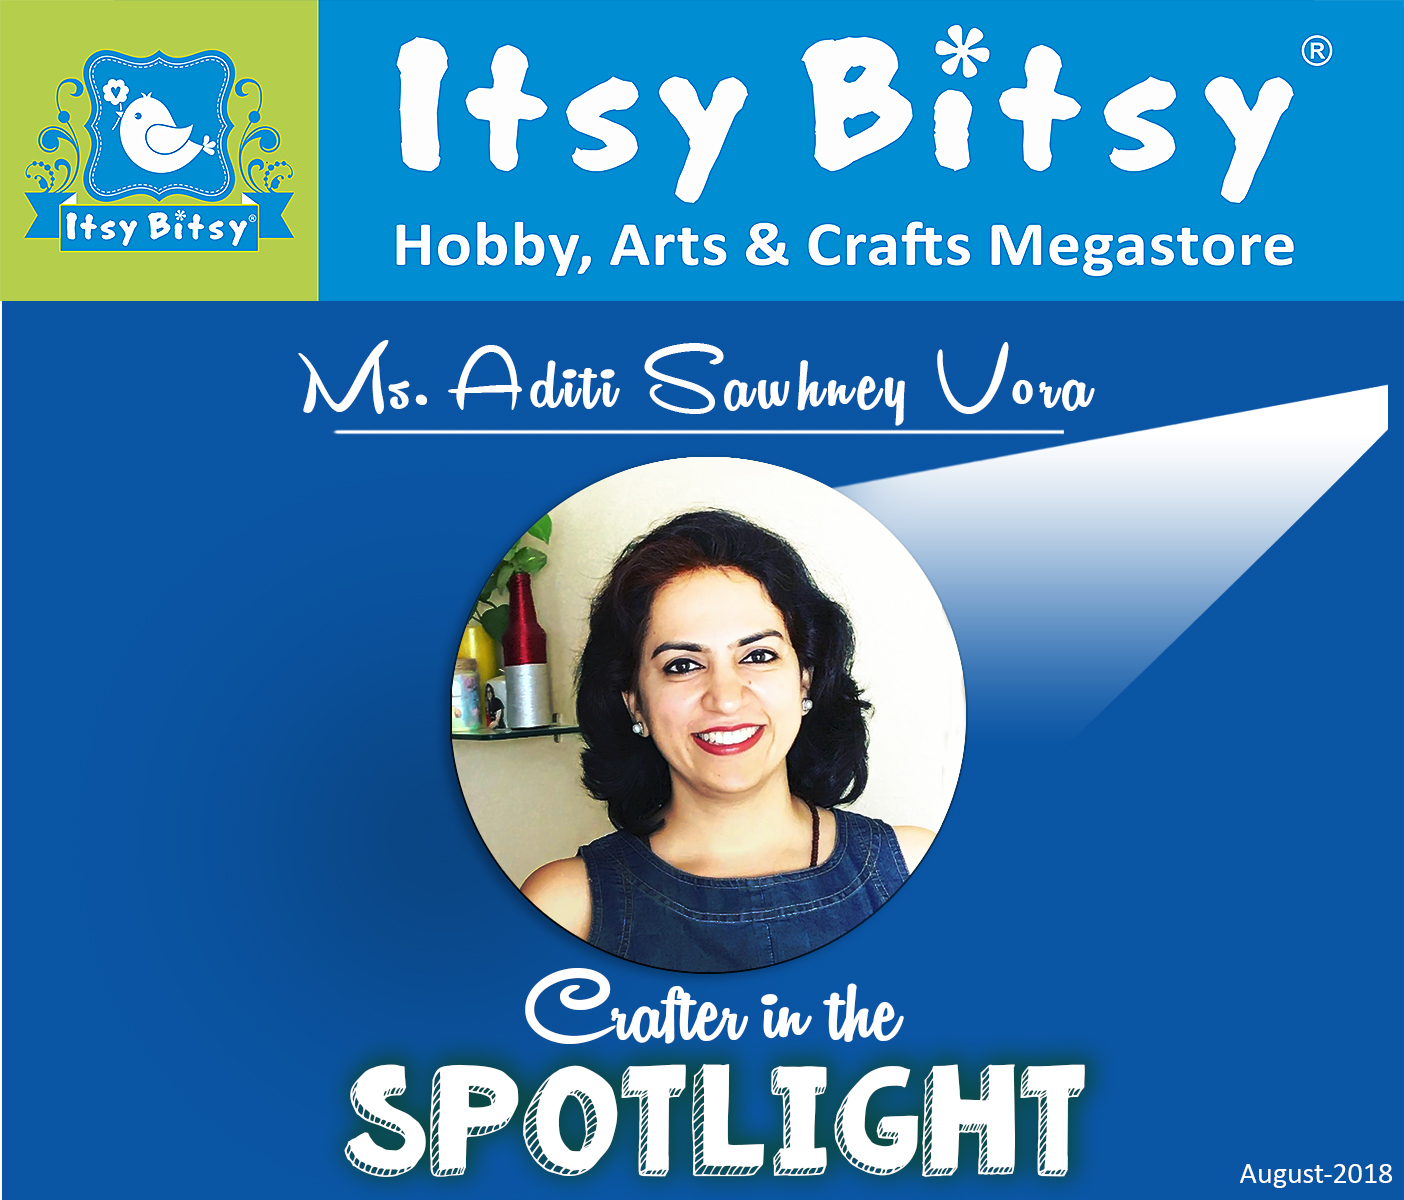 Crafter in the Spotlight: Itsy Bitsy